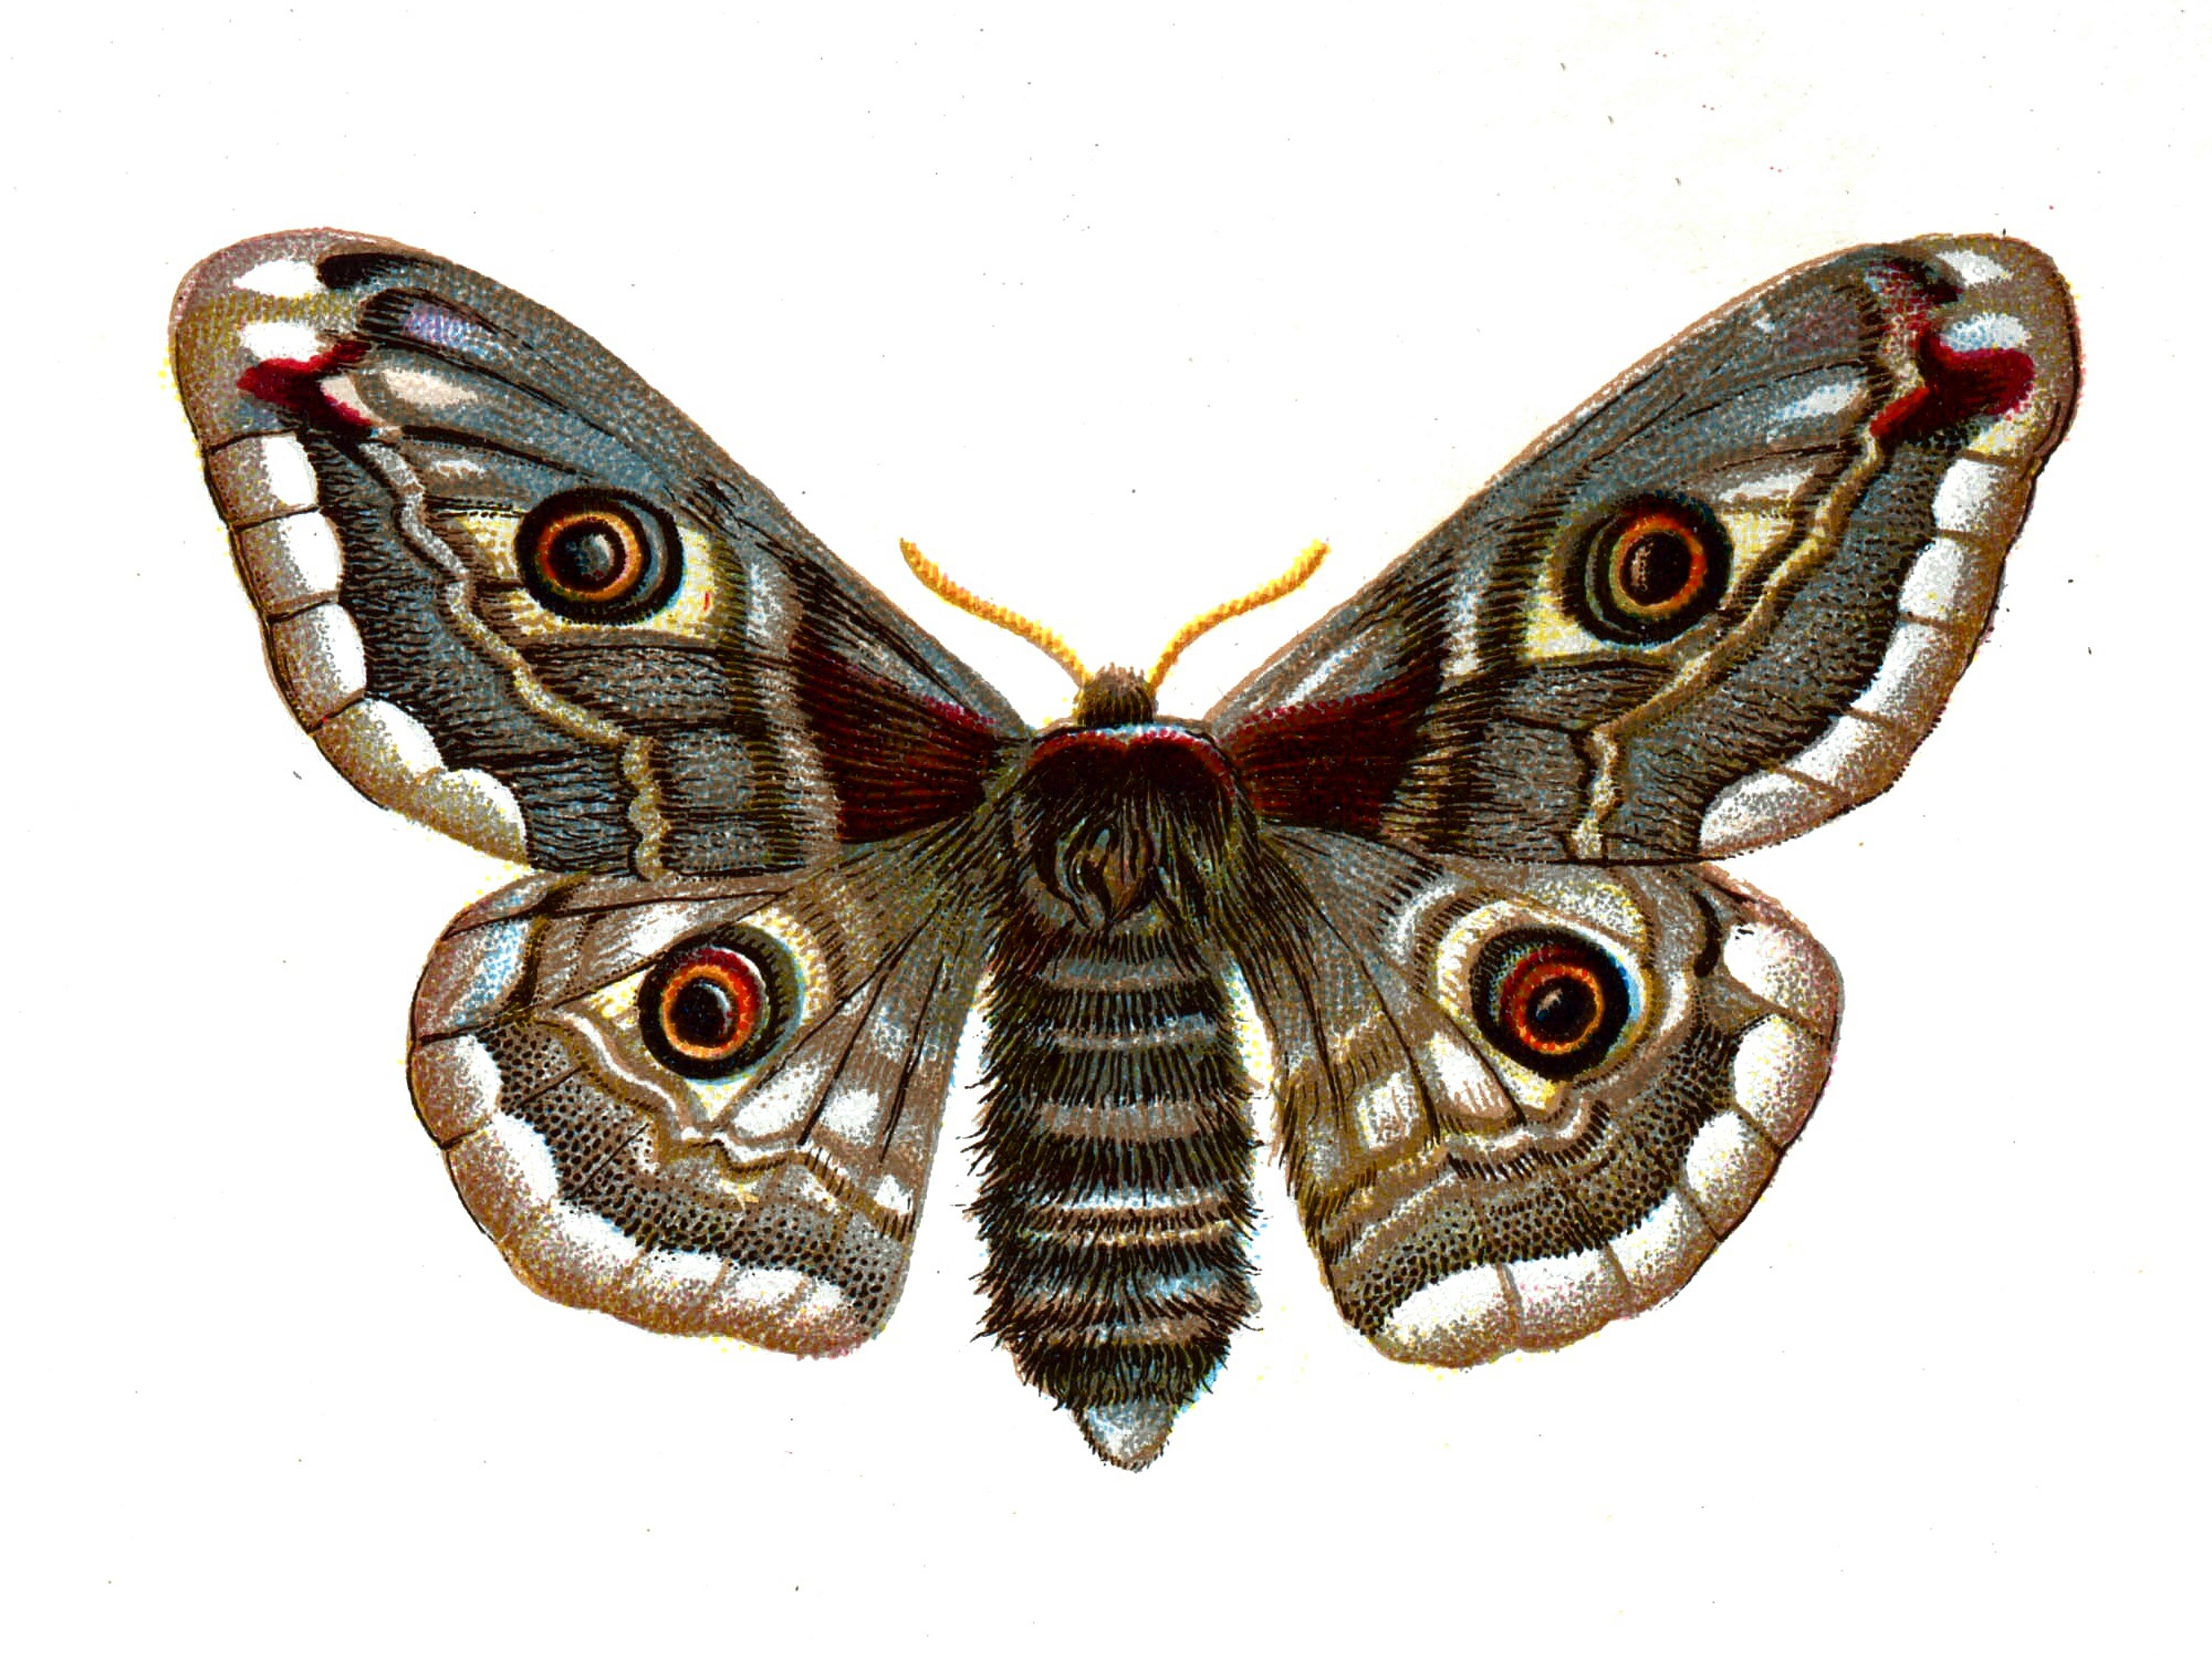 Design squish blog google old book and you will findbutterflies google old book and you will findbutterflies solutioingenieria Choice Image